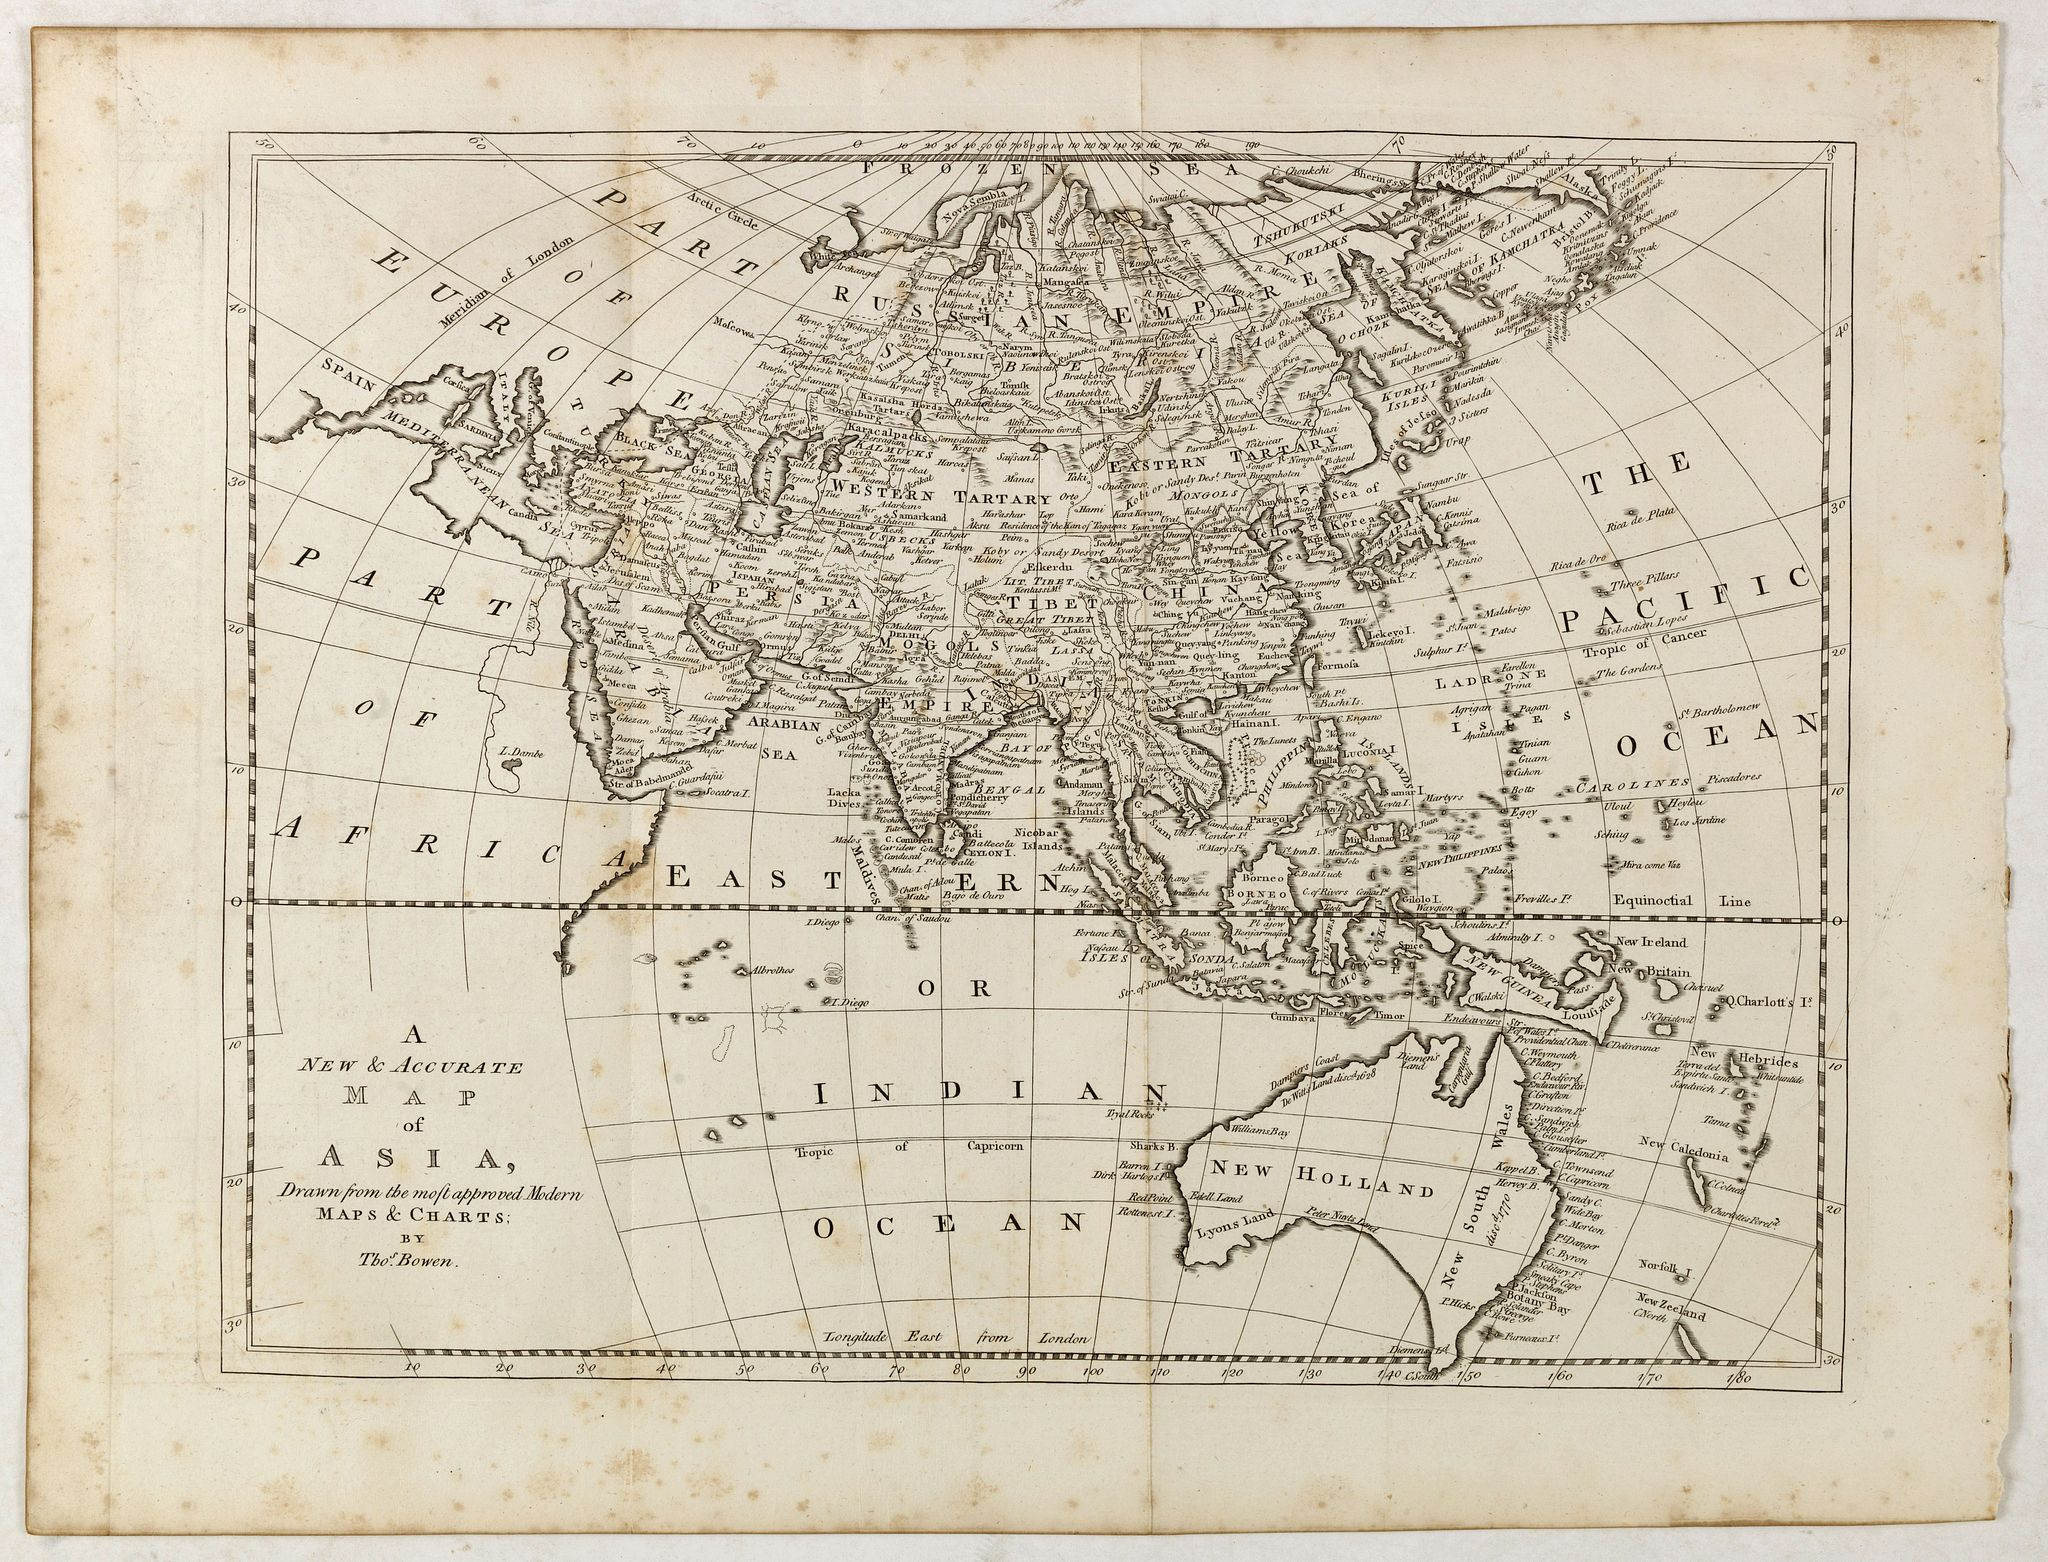 BOWEN, Th. -  A new & accurate map of Asia, Drawn from the most approved modern maps & charts / by Thos. Bowen.